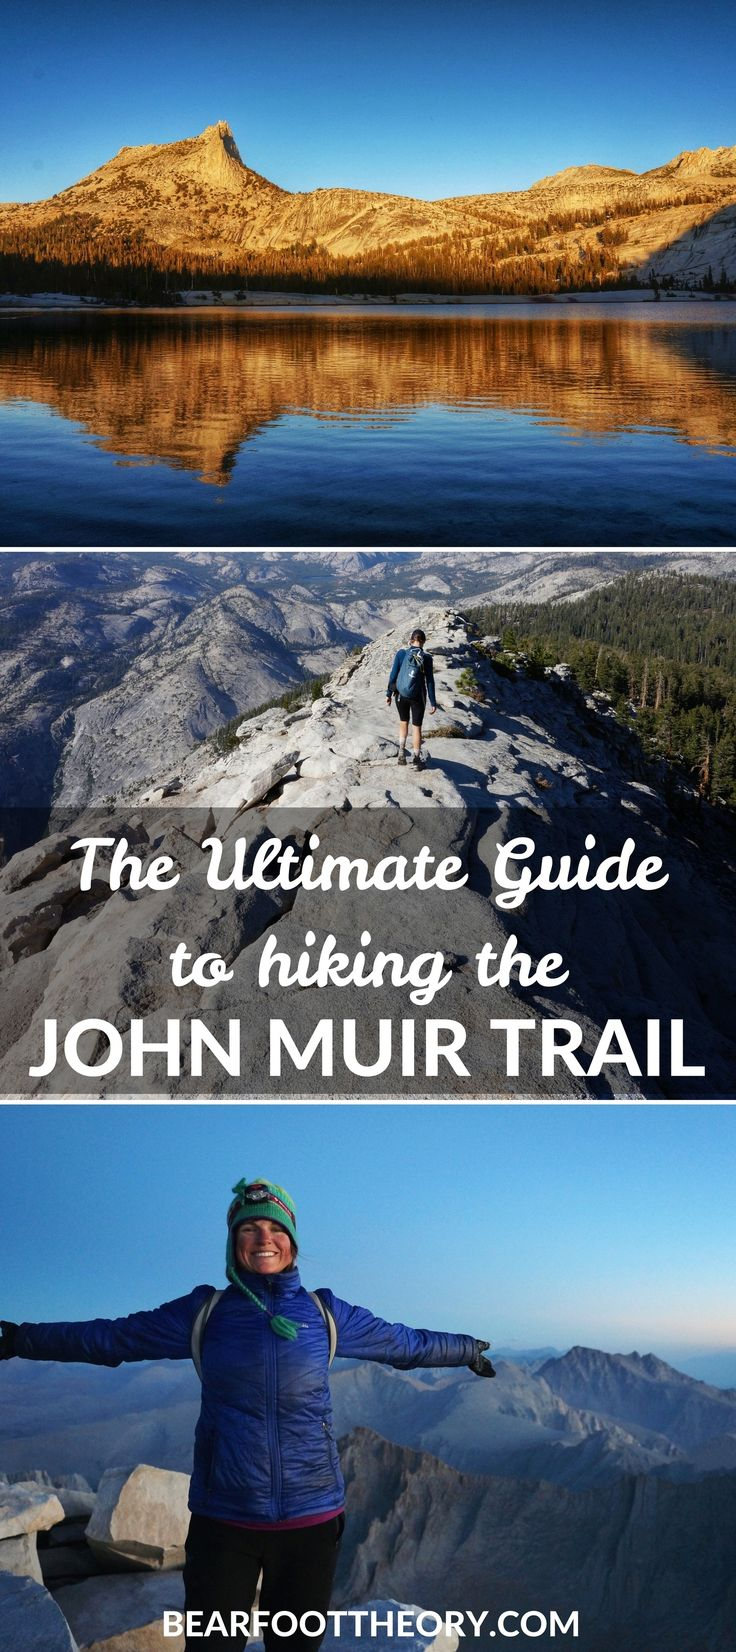 Everything you need to know to plan a thru-hike on the John Muir Trail including permits, gear, resupply, and trail highlights.